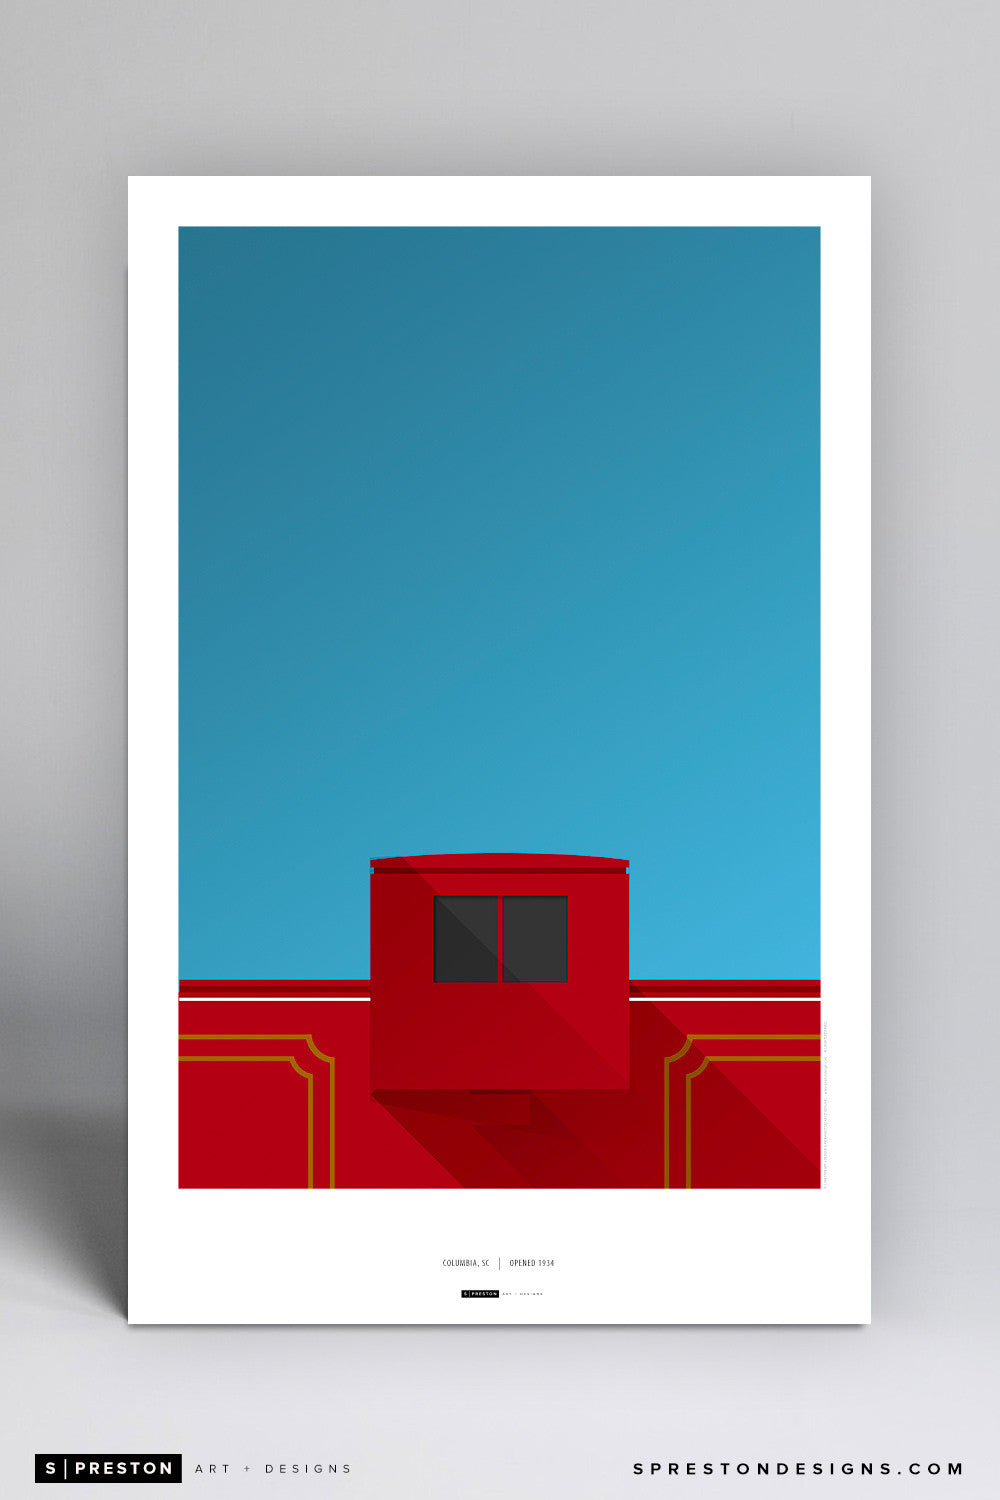 Minimalist Williams-Brice Stadium Poster Print University of South Carolina - S Preston